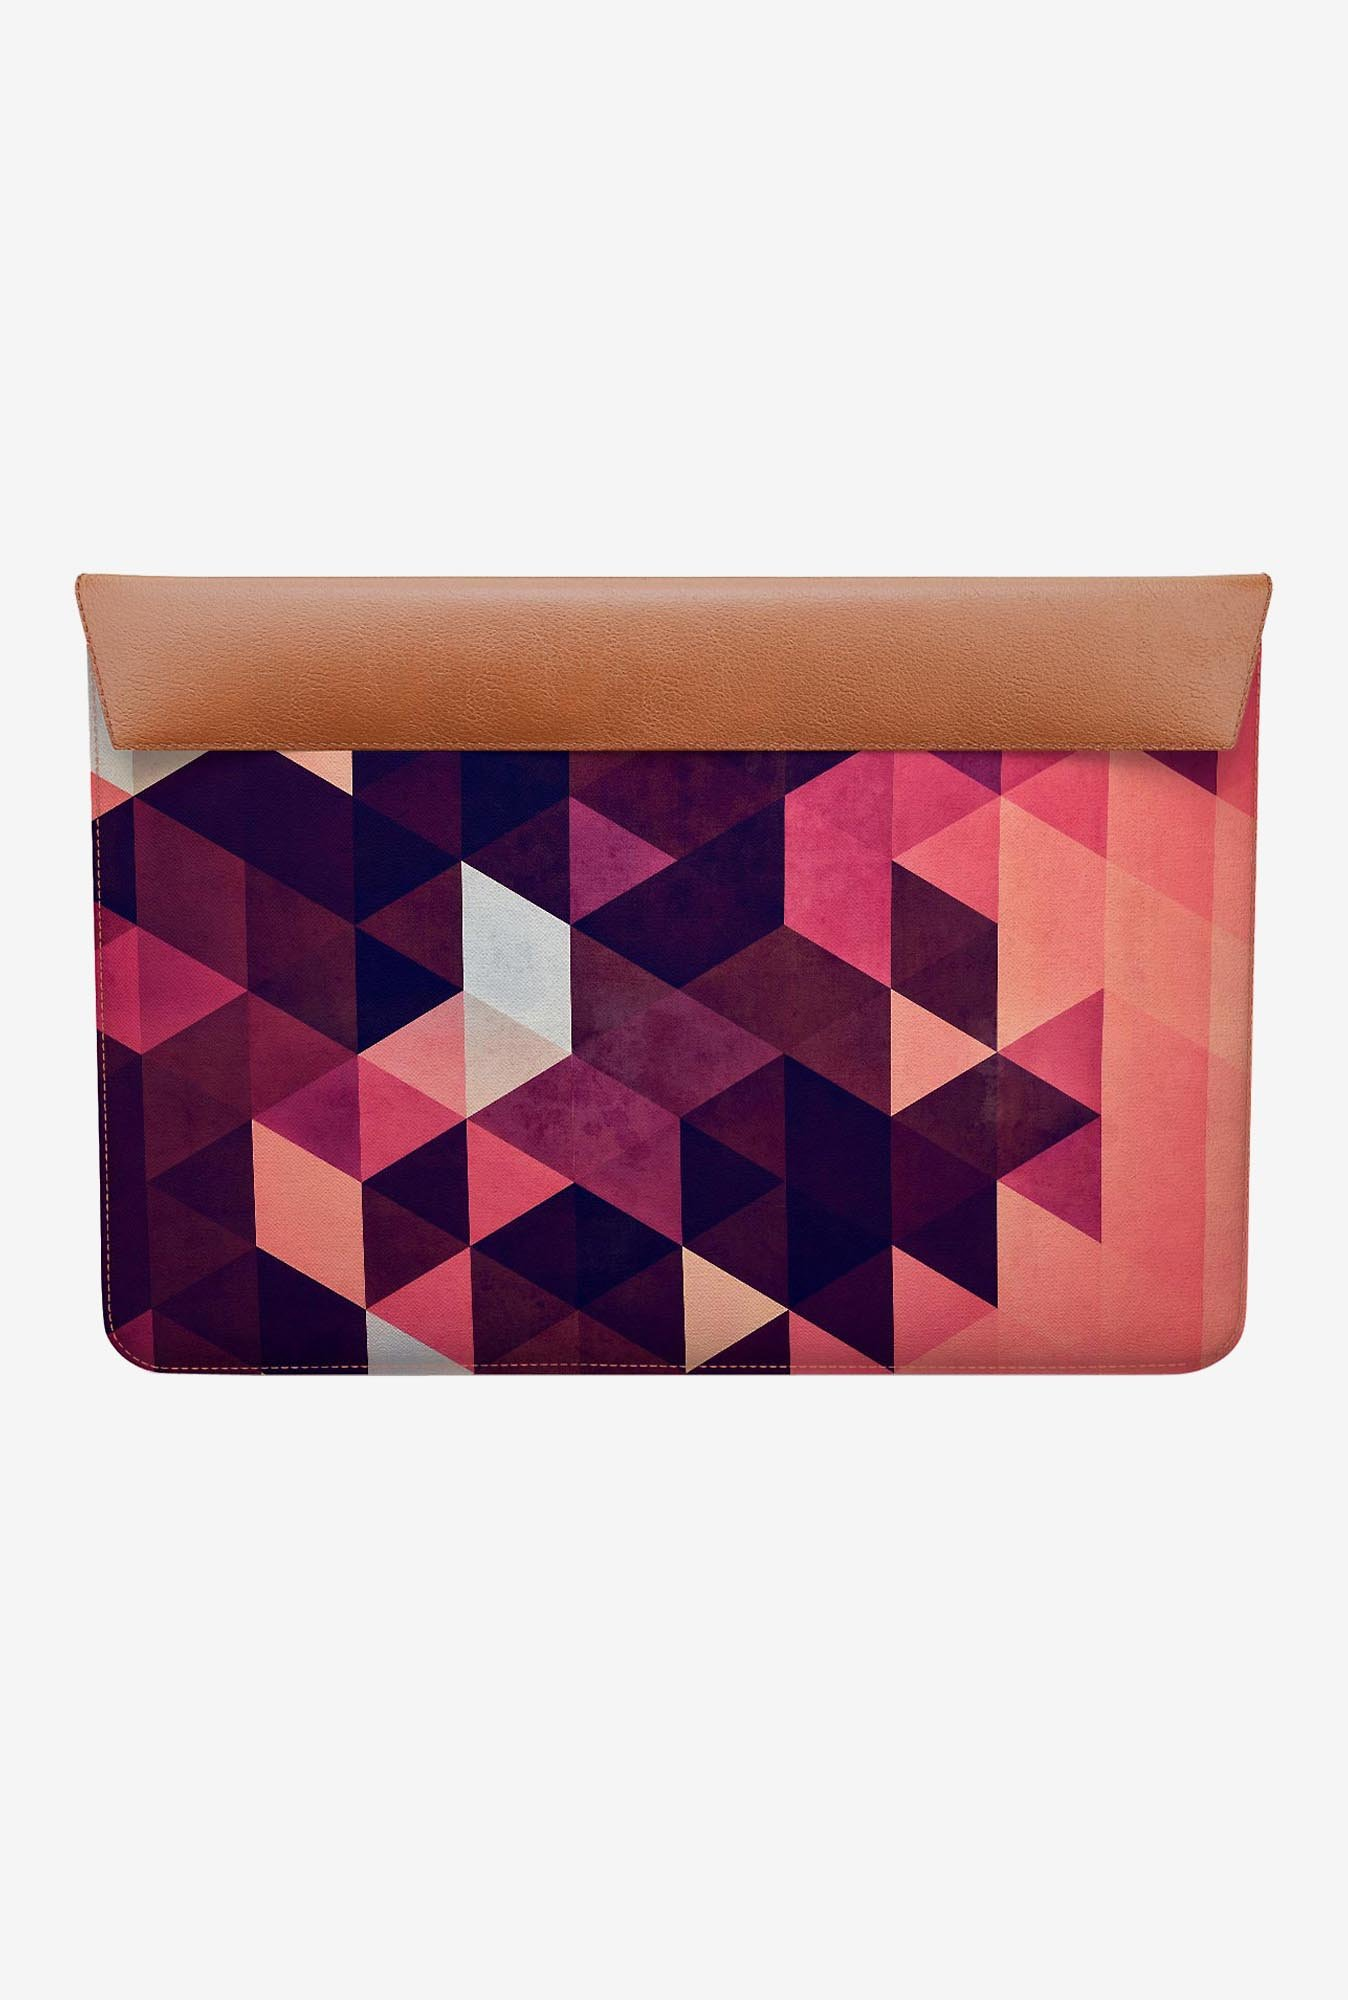 "DailyObjects Scyyr Macbook Air 11"" Envelope Sleeve"